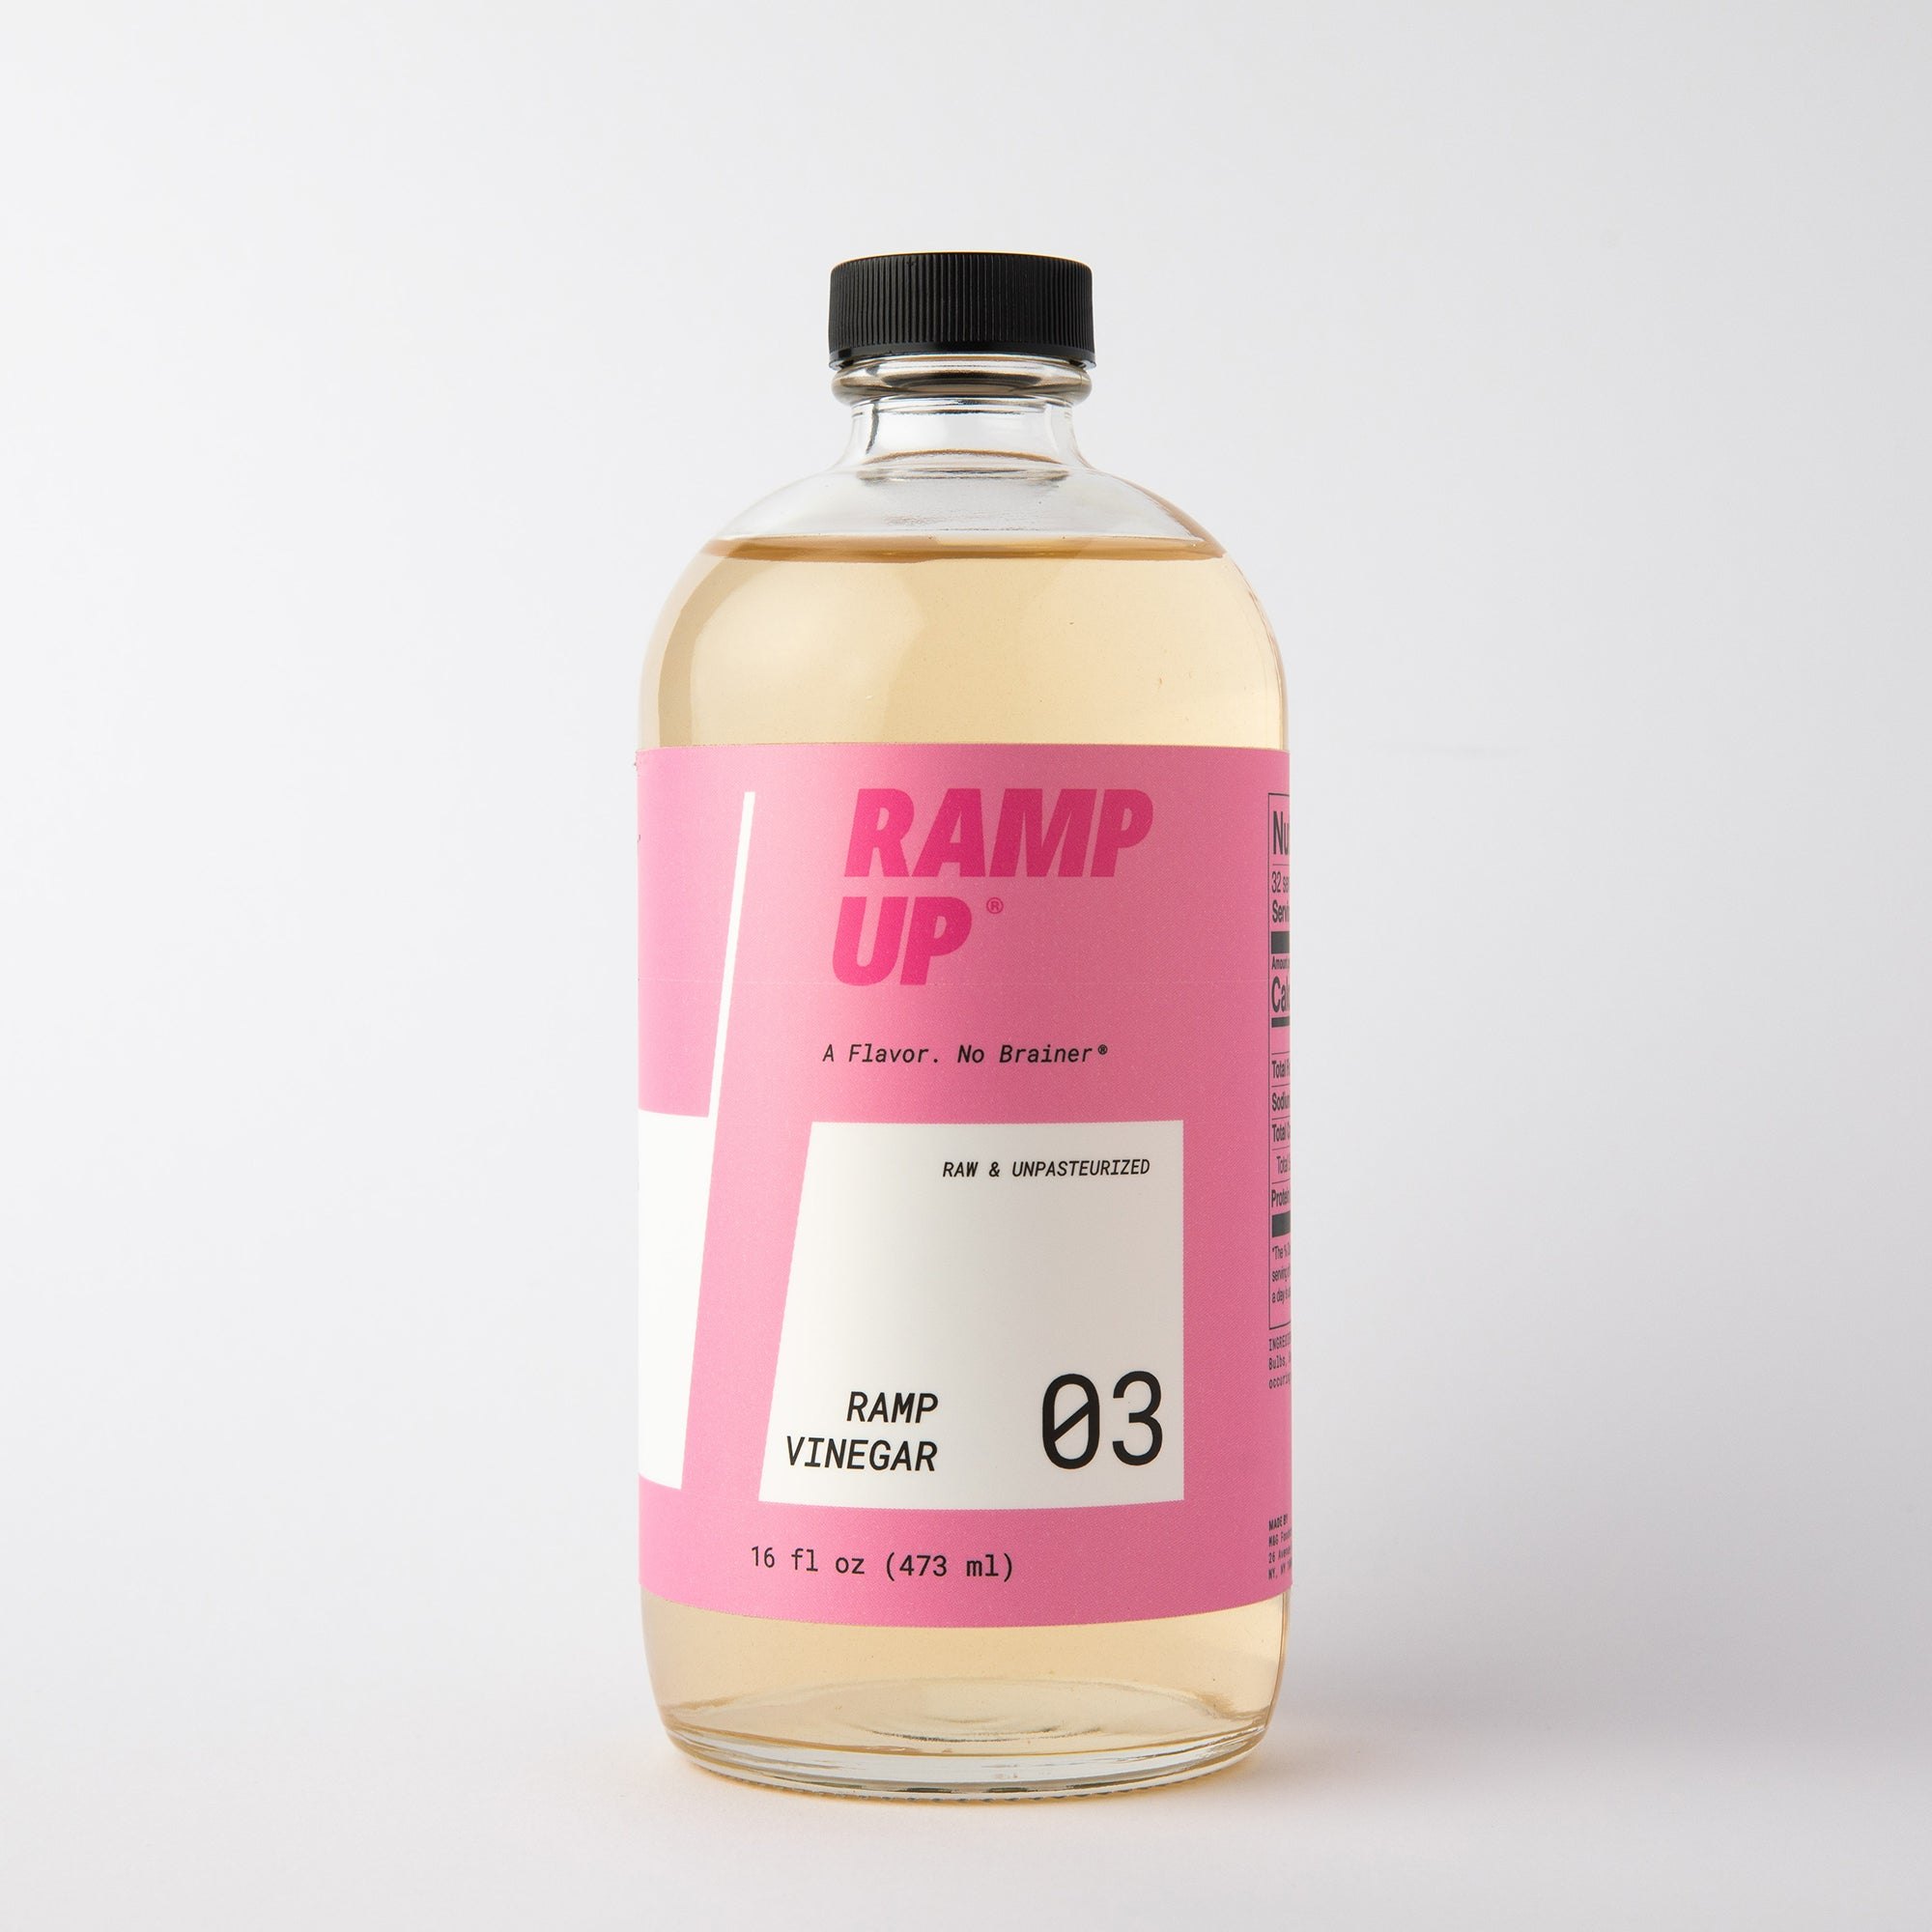 03 Ramp Vinegar